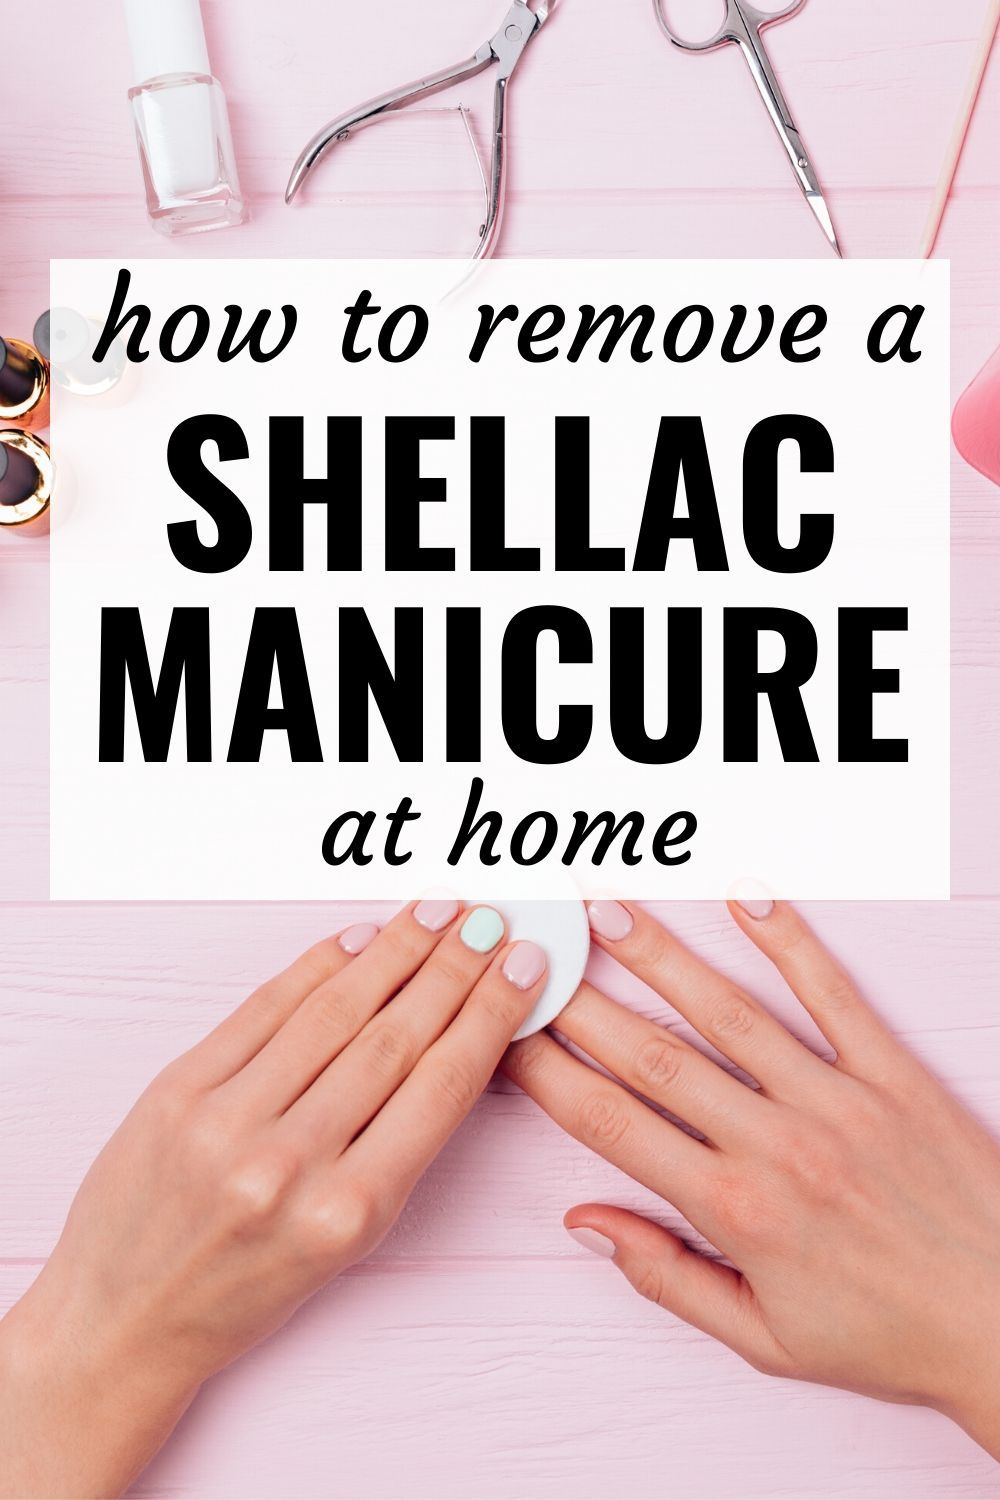 How To Remove Gel Shellac Nails Without Acetone At Home In 2020 Shellac Nails At Home Remove Shellac Shellac Nails